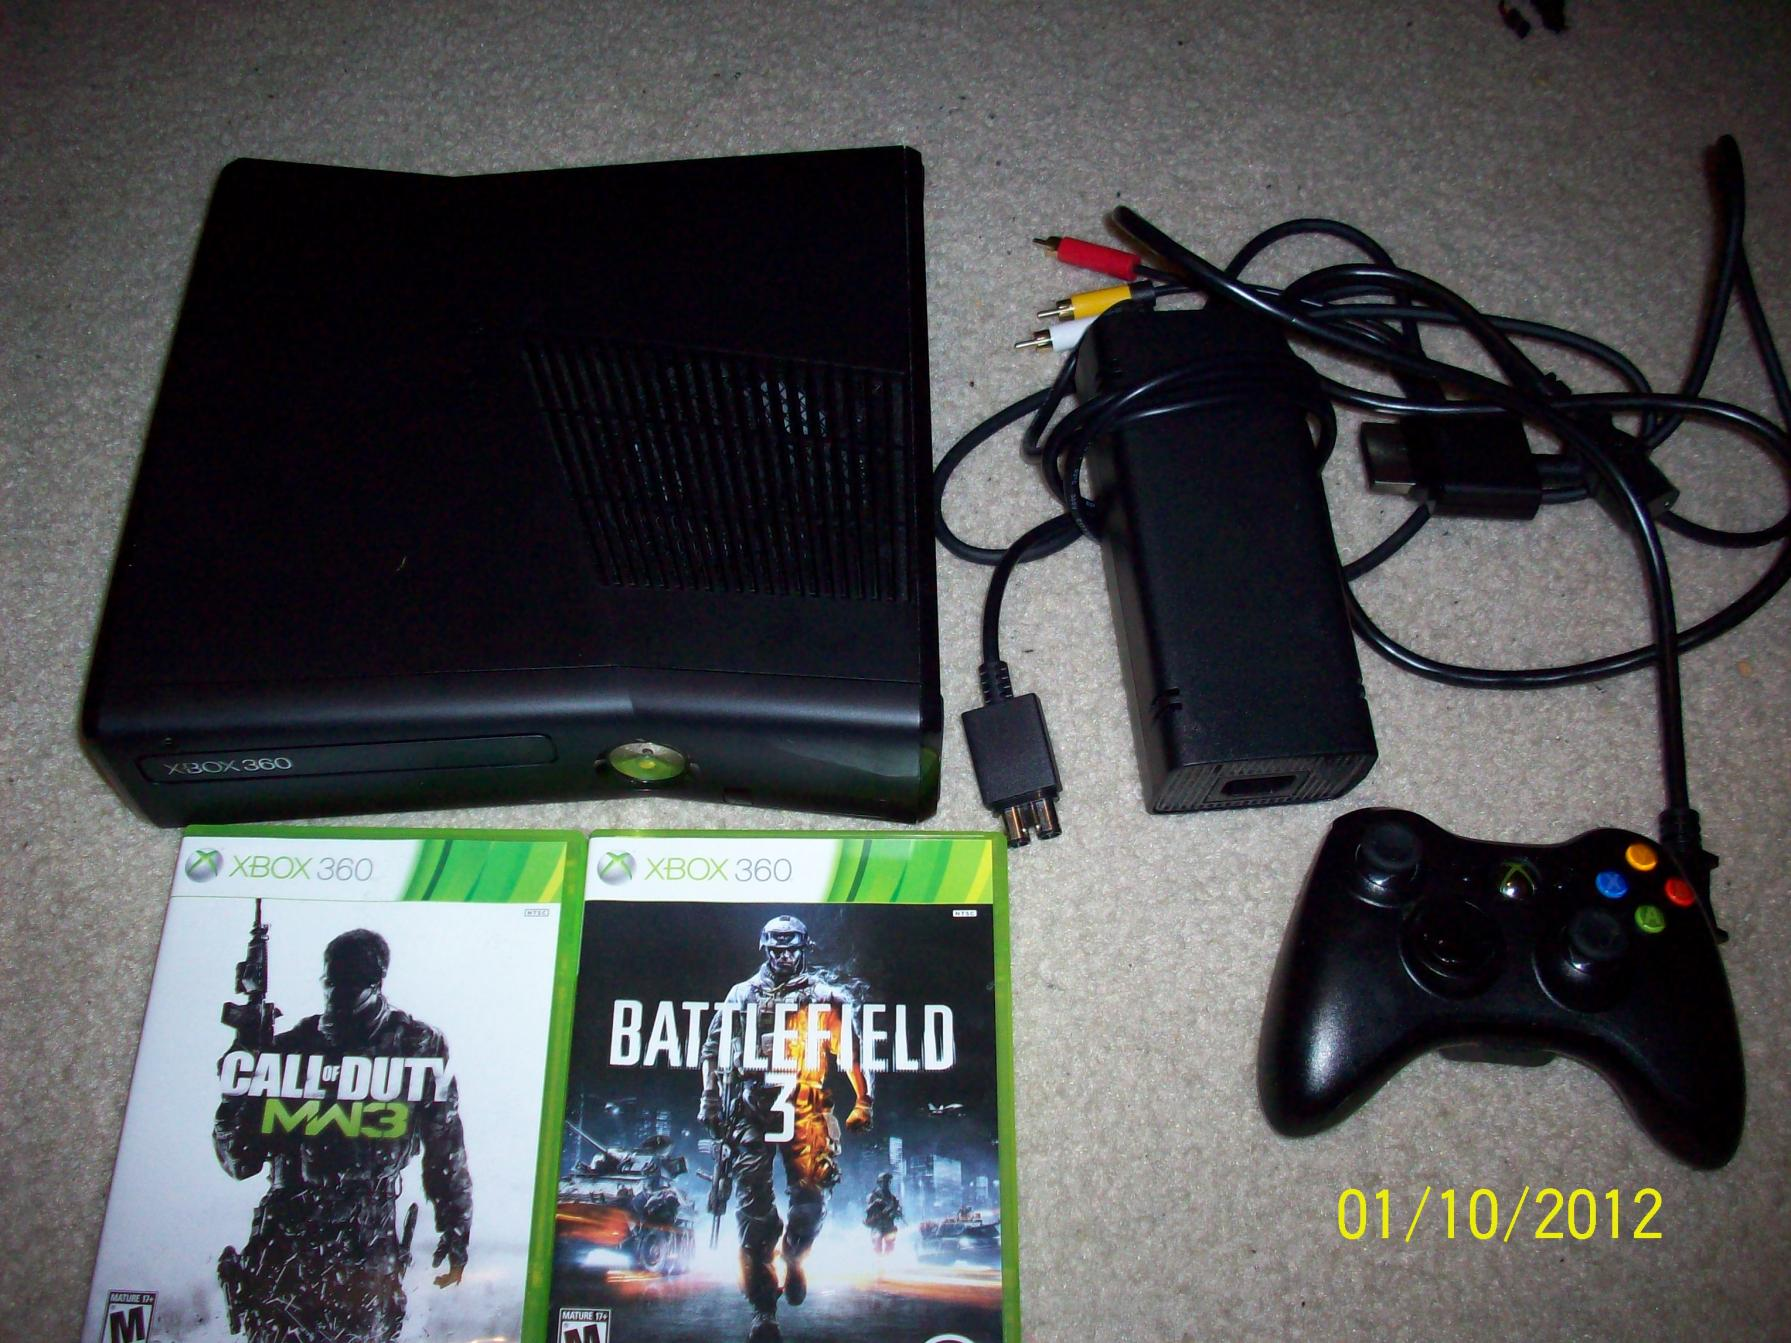 Hqdefault as well D Xbox Slim Gb Mw Battlefield moreover Maxresdefault likewise Maxresdefault further Nxe. on xbox 360 slim